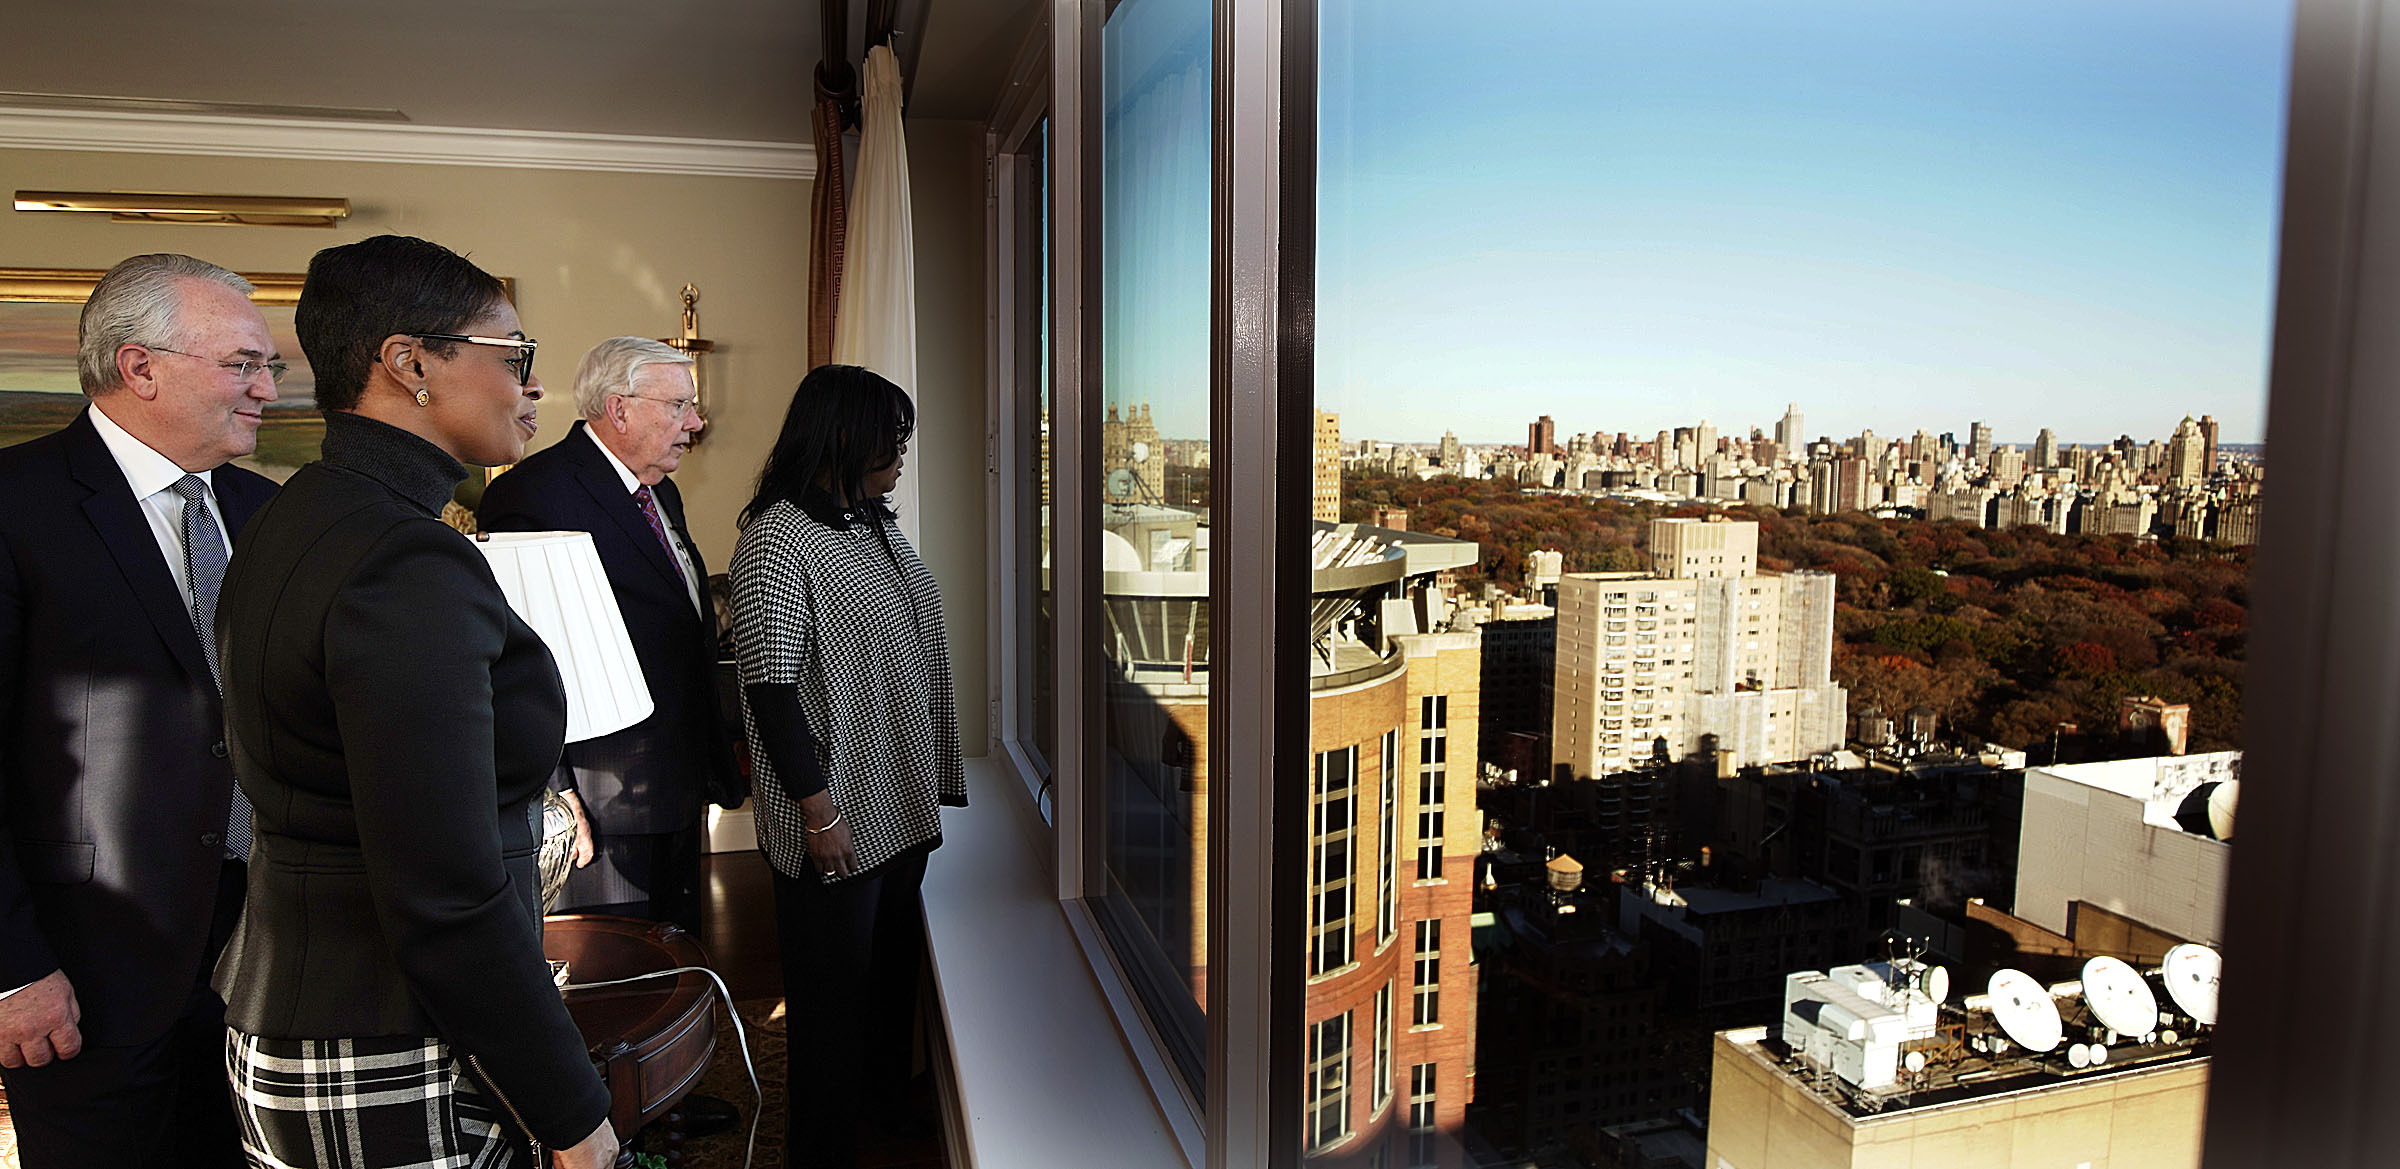 Elder Jack N. Gerard, a General Authority Seventy of The Church of Jesus Christ of Latter-day Saints, left, and President M. Russell Ballard, third from left, acting president of the Quorum of the Twelve Apostle, take in a view of New York City with Karen Boykin-Towns, second from left, vice chairwoman of the NAACP, and Theresa Dear, a member of the national board of directors for the NAACP, on Saturday, Nov. 16, 2019.